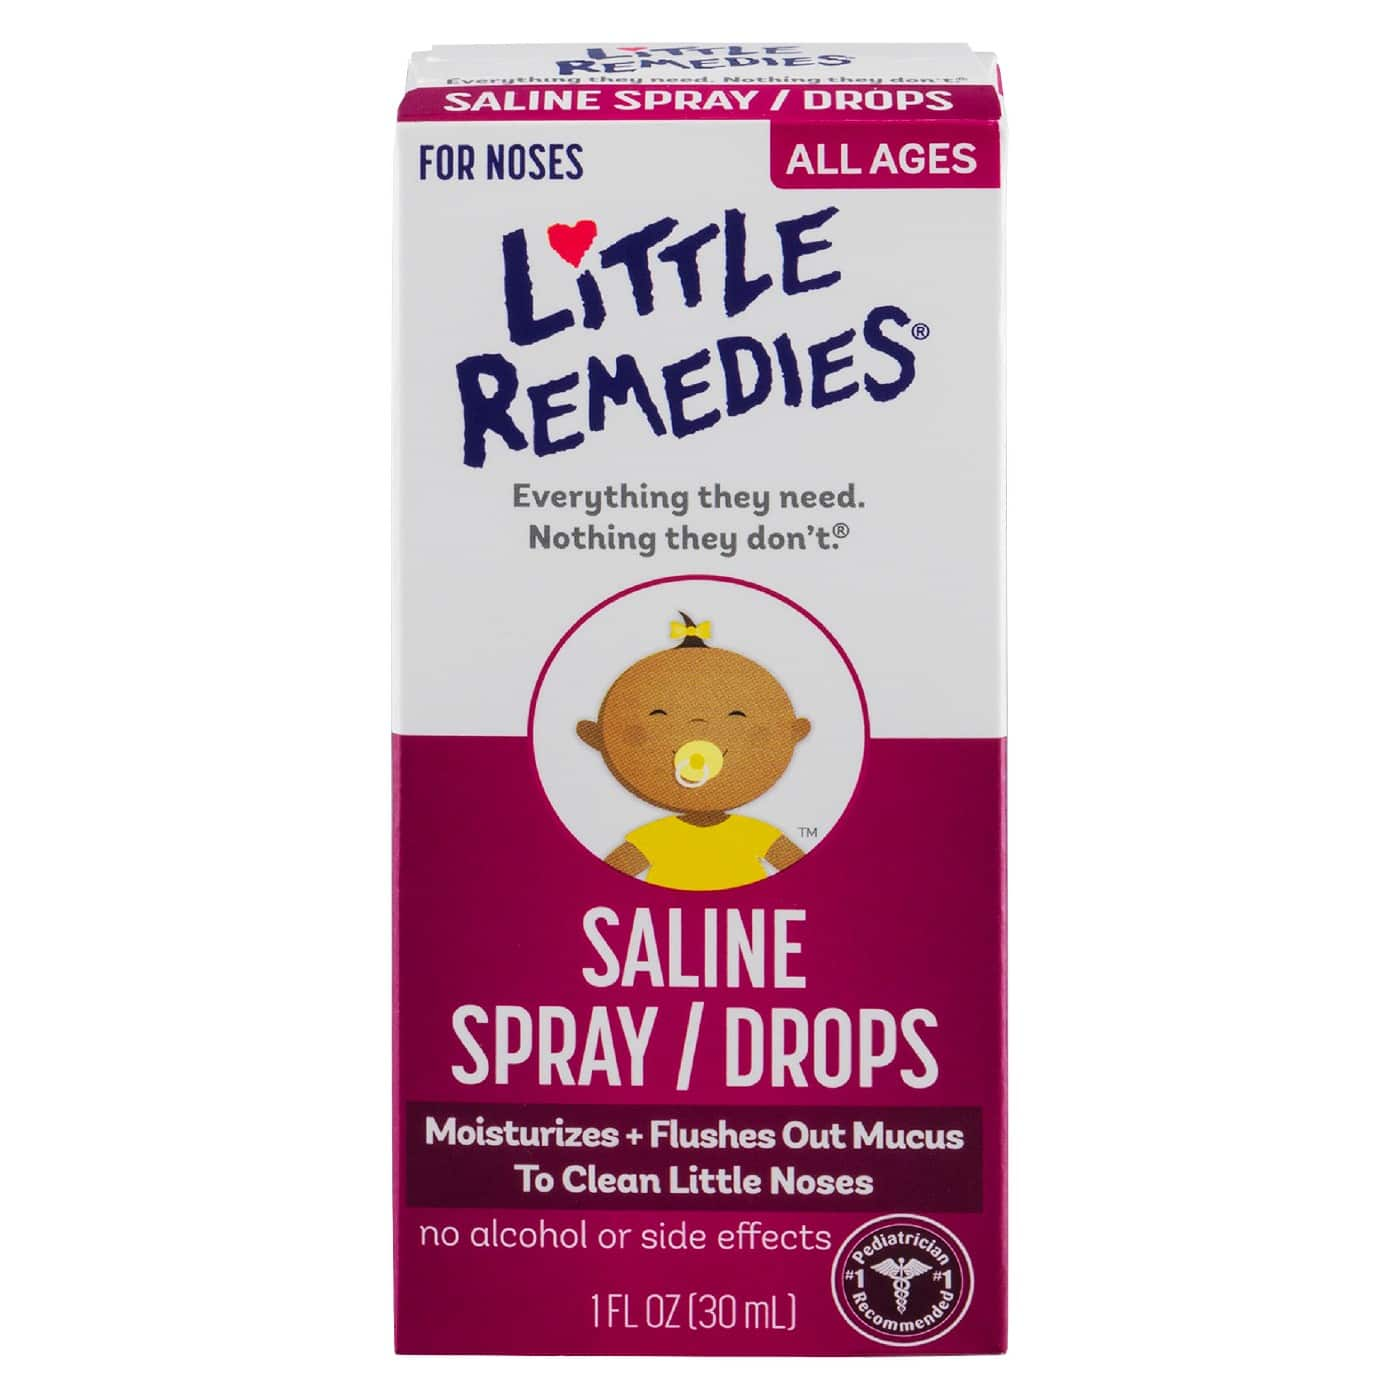 4 x Little Remedies Saline Spray/Drops Noses All Ages - B&M only Cartwheel Deal YMMV $1.03